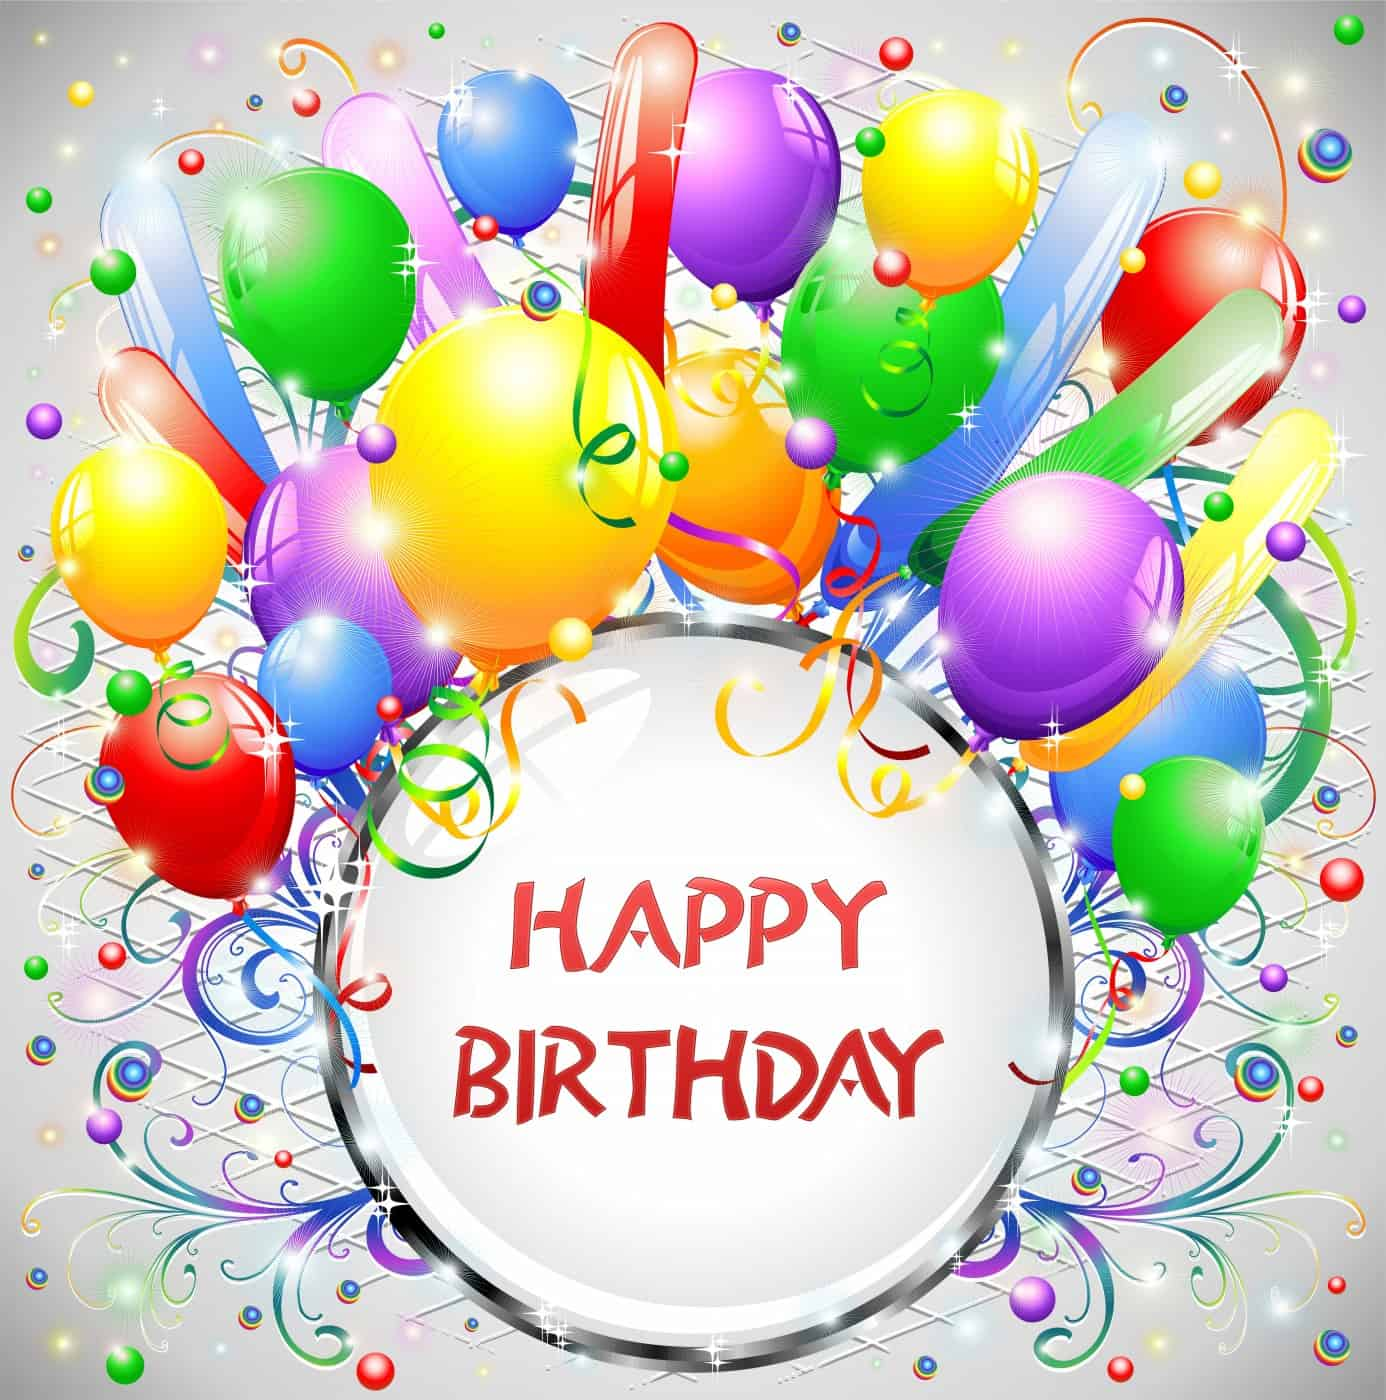 #1 World's Most Funny Happy Birthday Wish Song - YouTube  |Happy Birthday Messages For Him